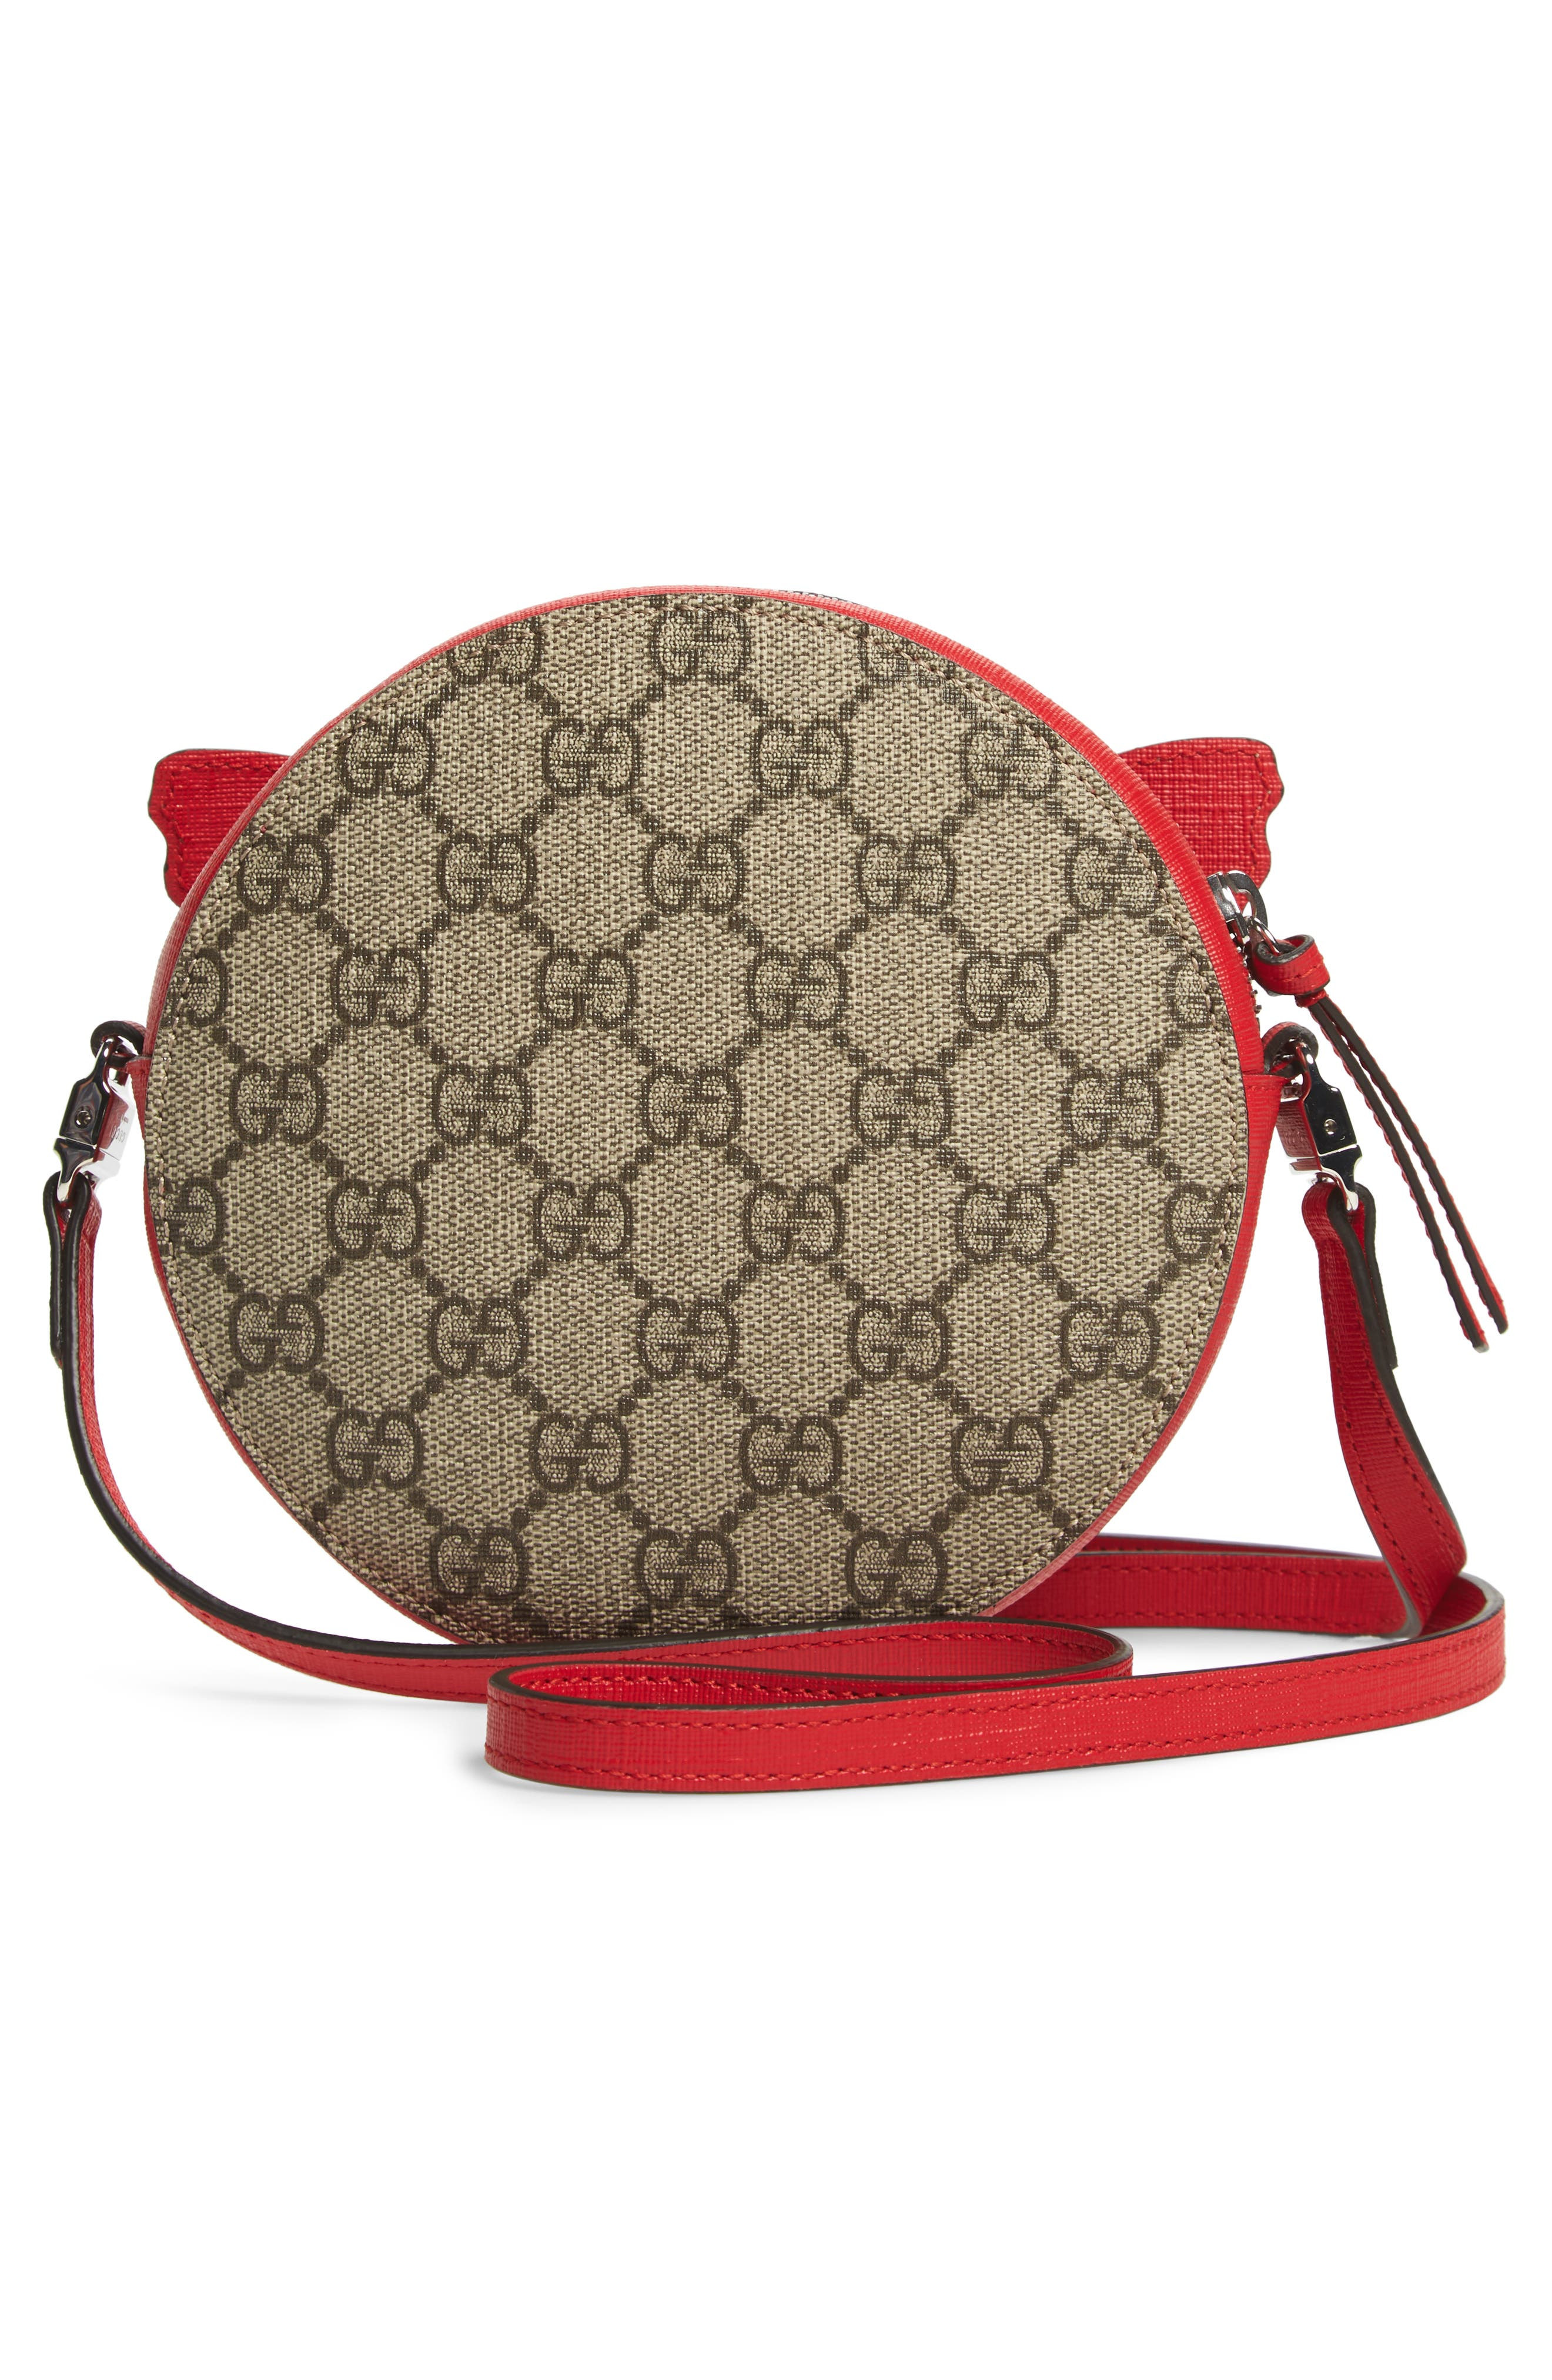 GUCCI,                             GG Supreme Rainbow Butterfly Crossbody Bag,                             Alternate thumbnail 2, color,                             BROWN MULTI